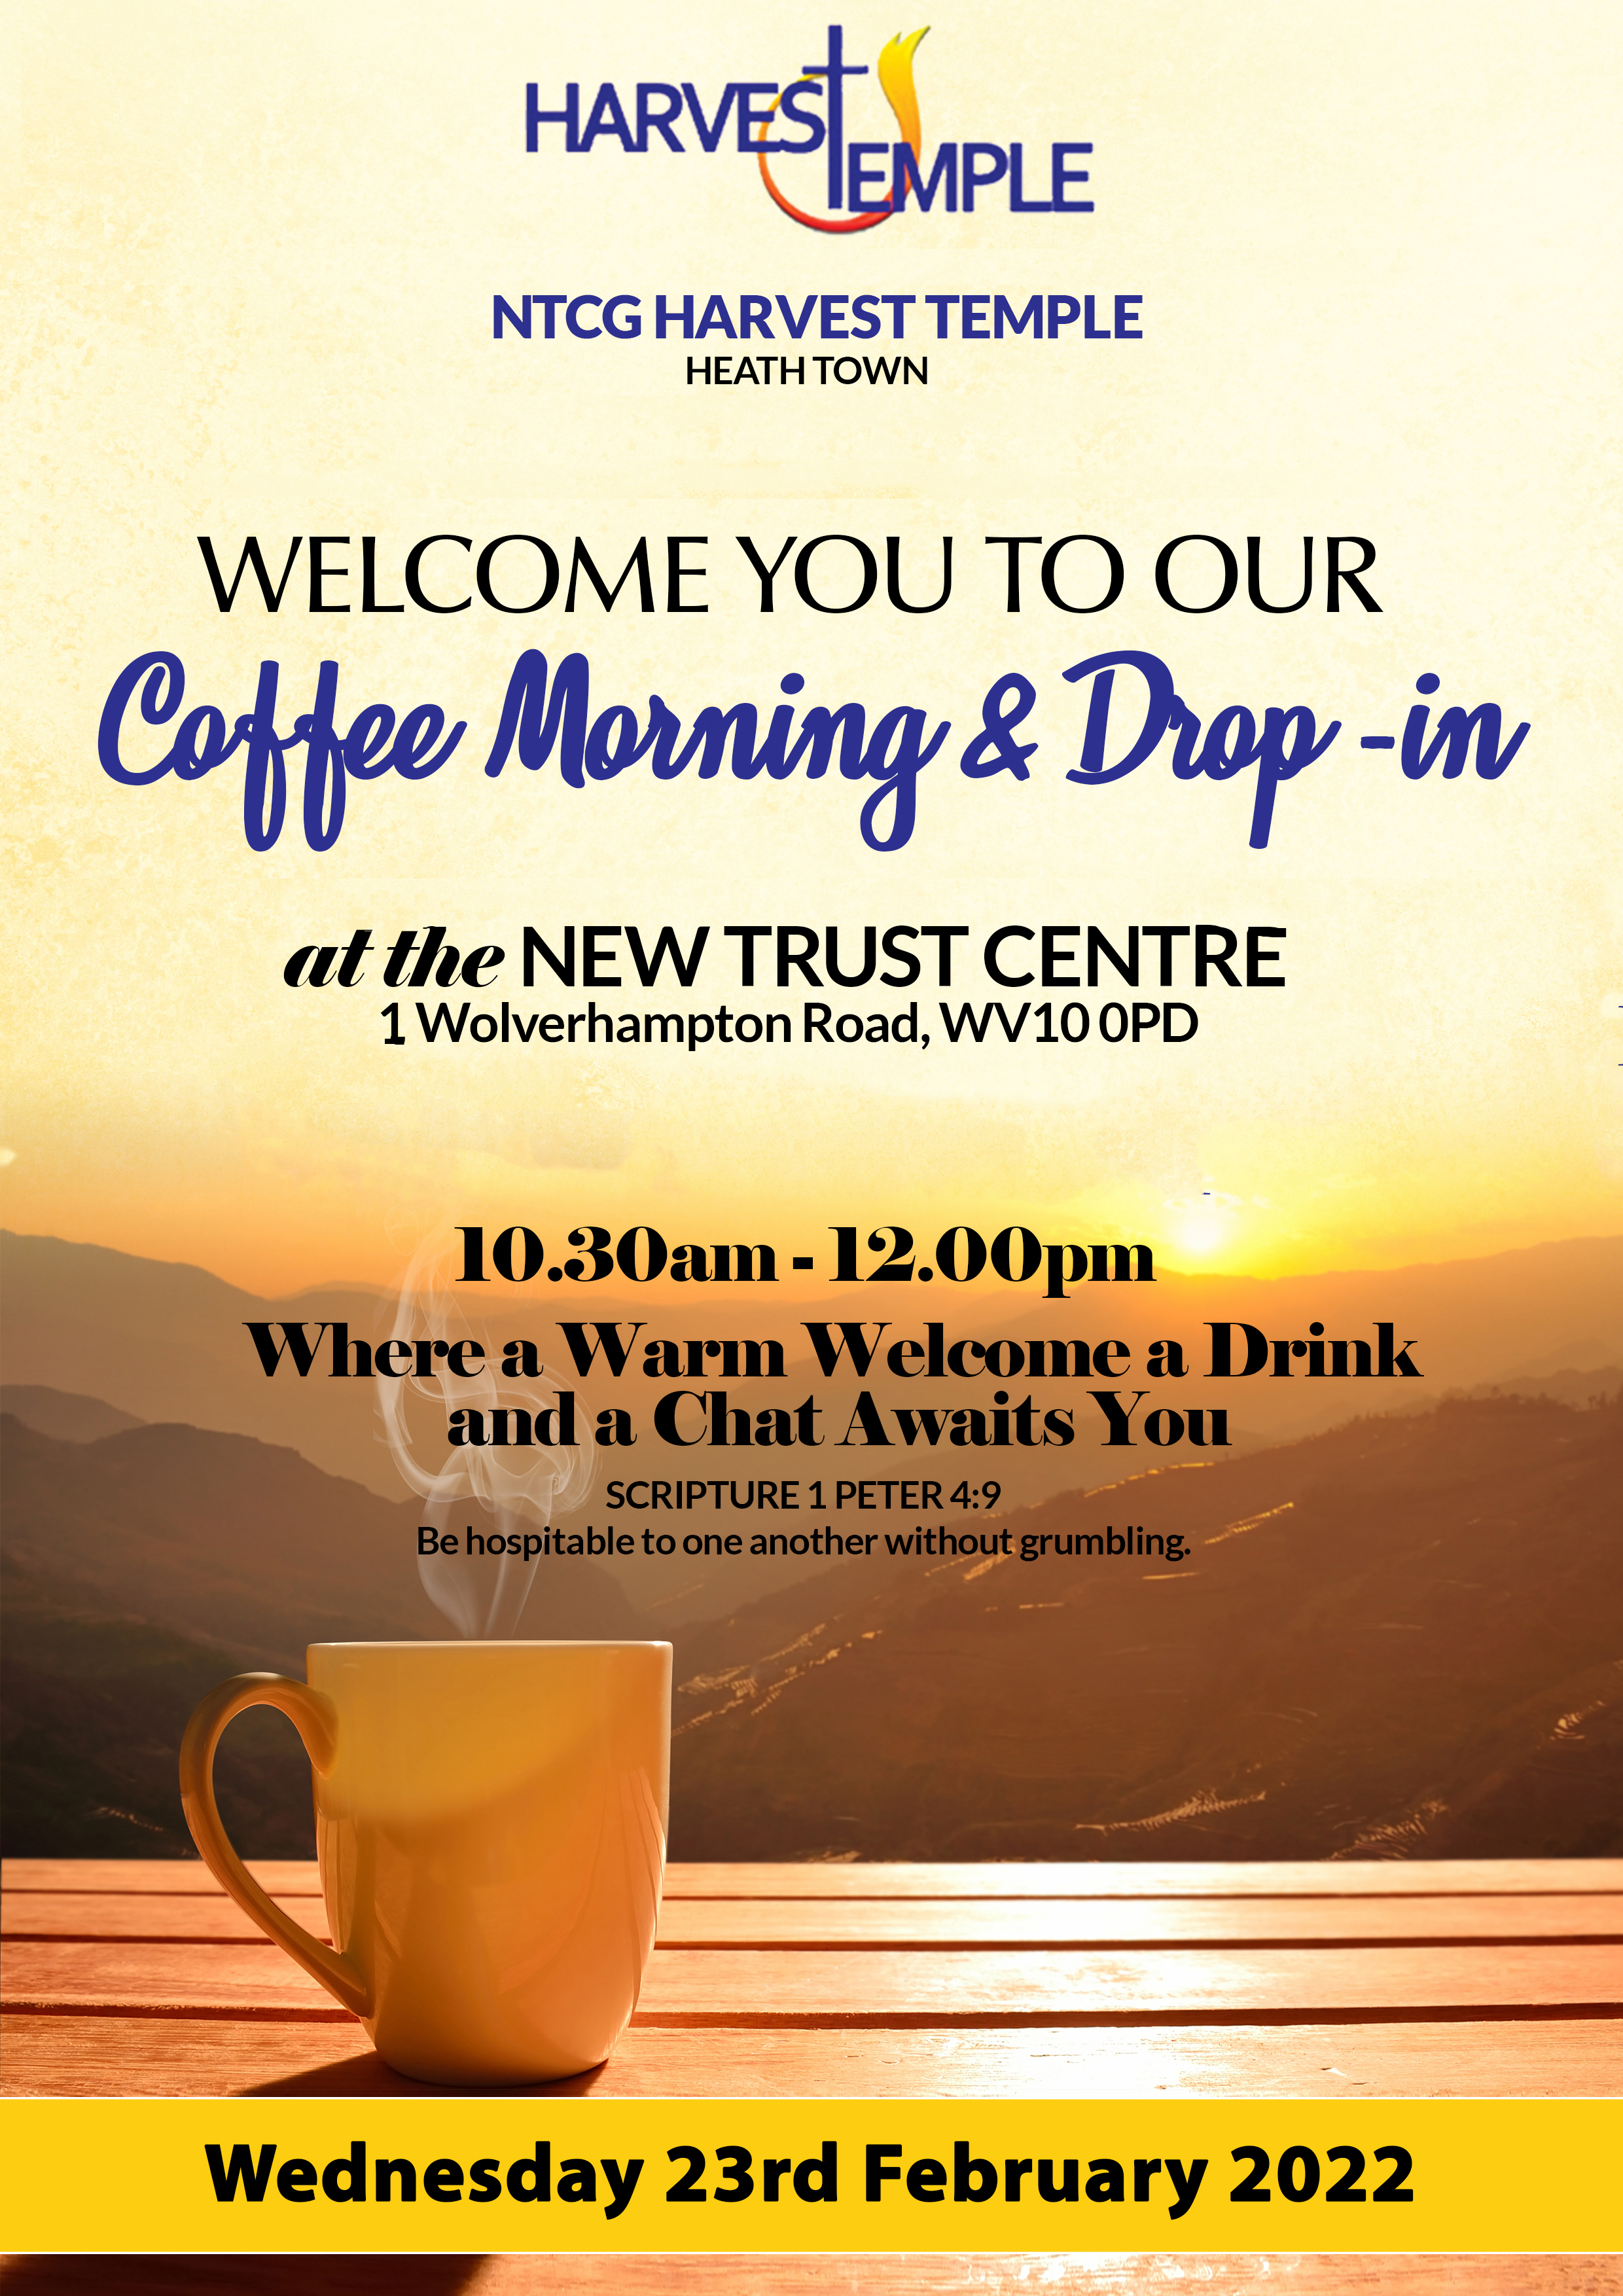 harvest temple coffee morning flyer